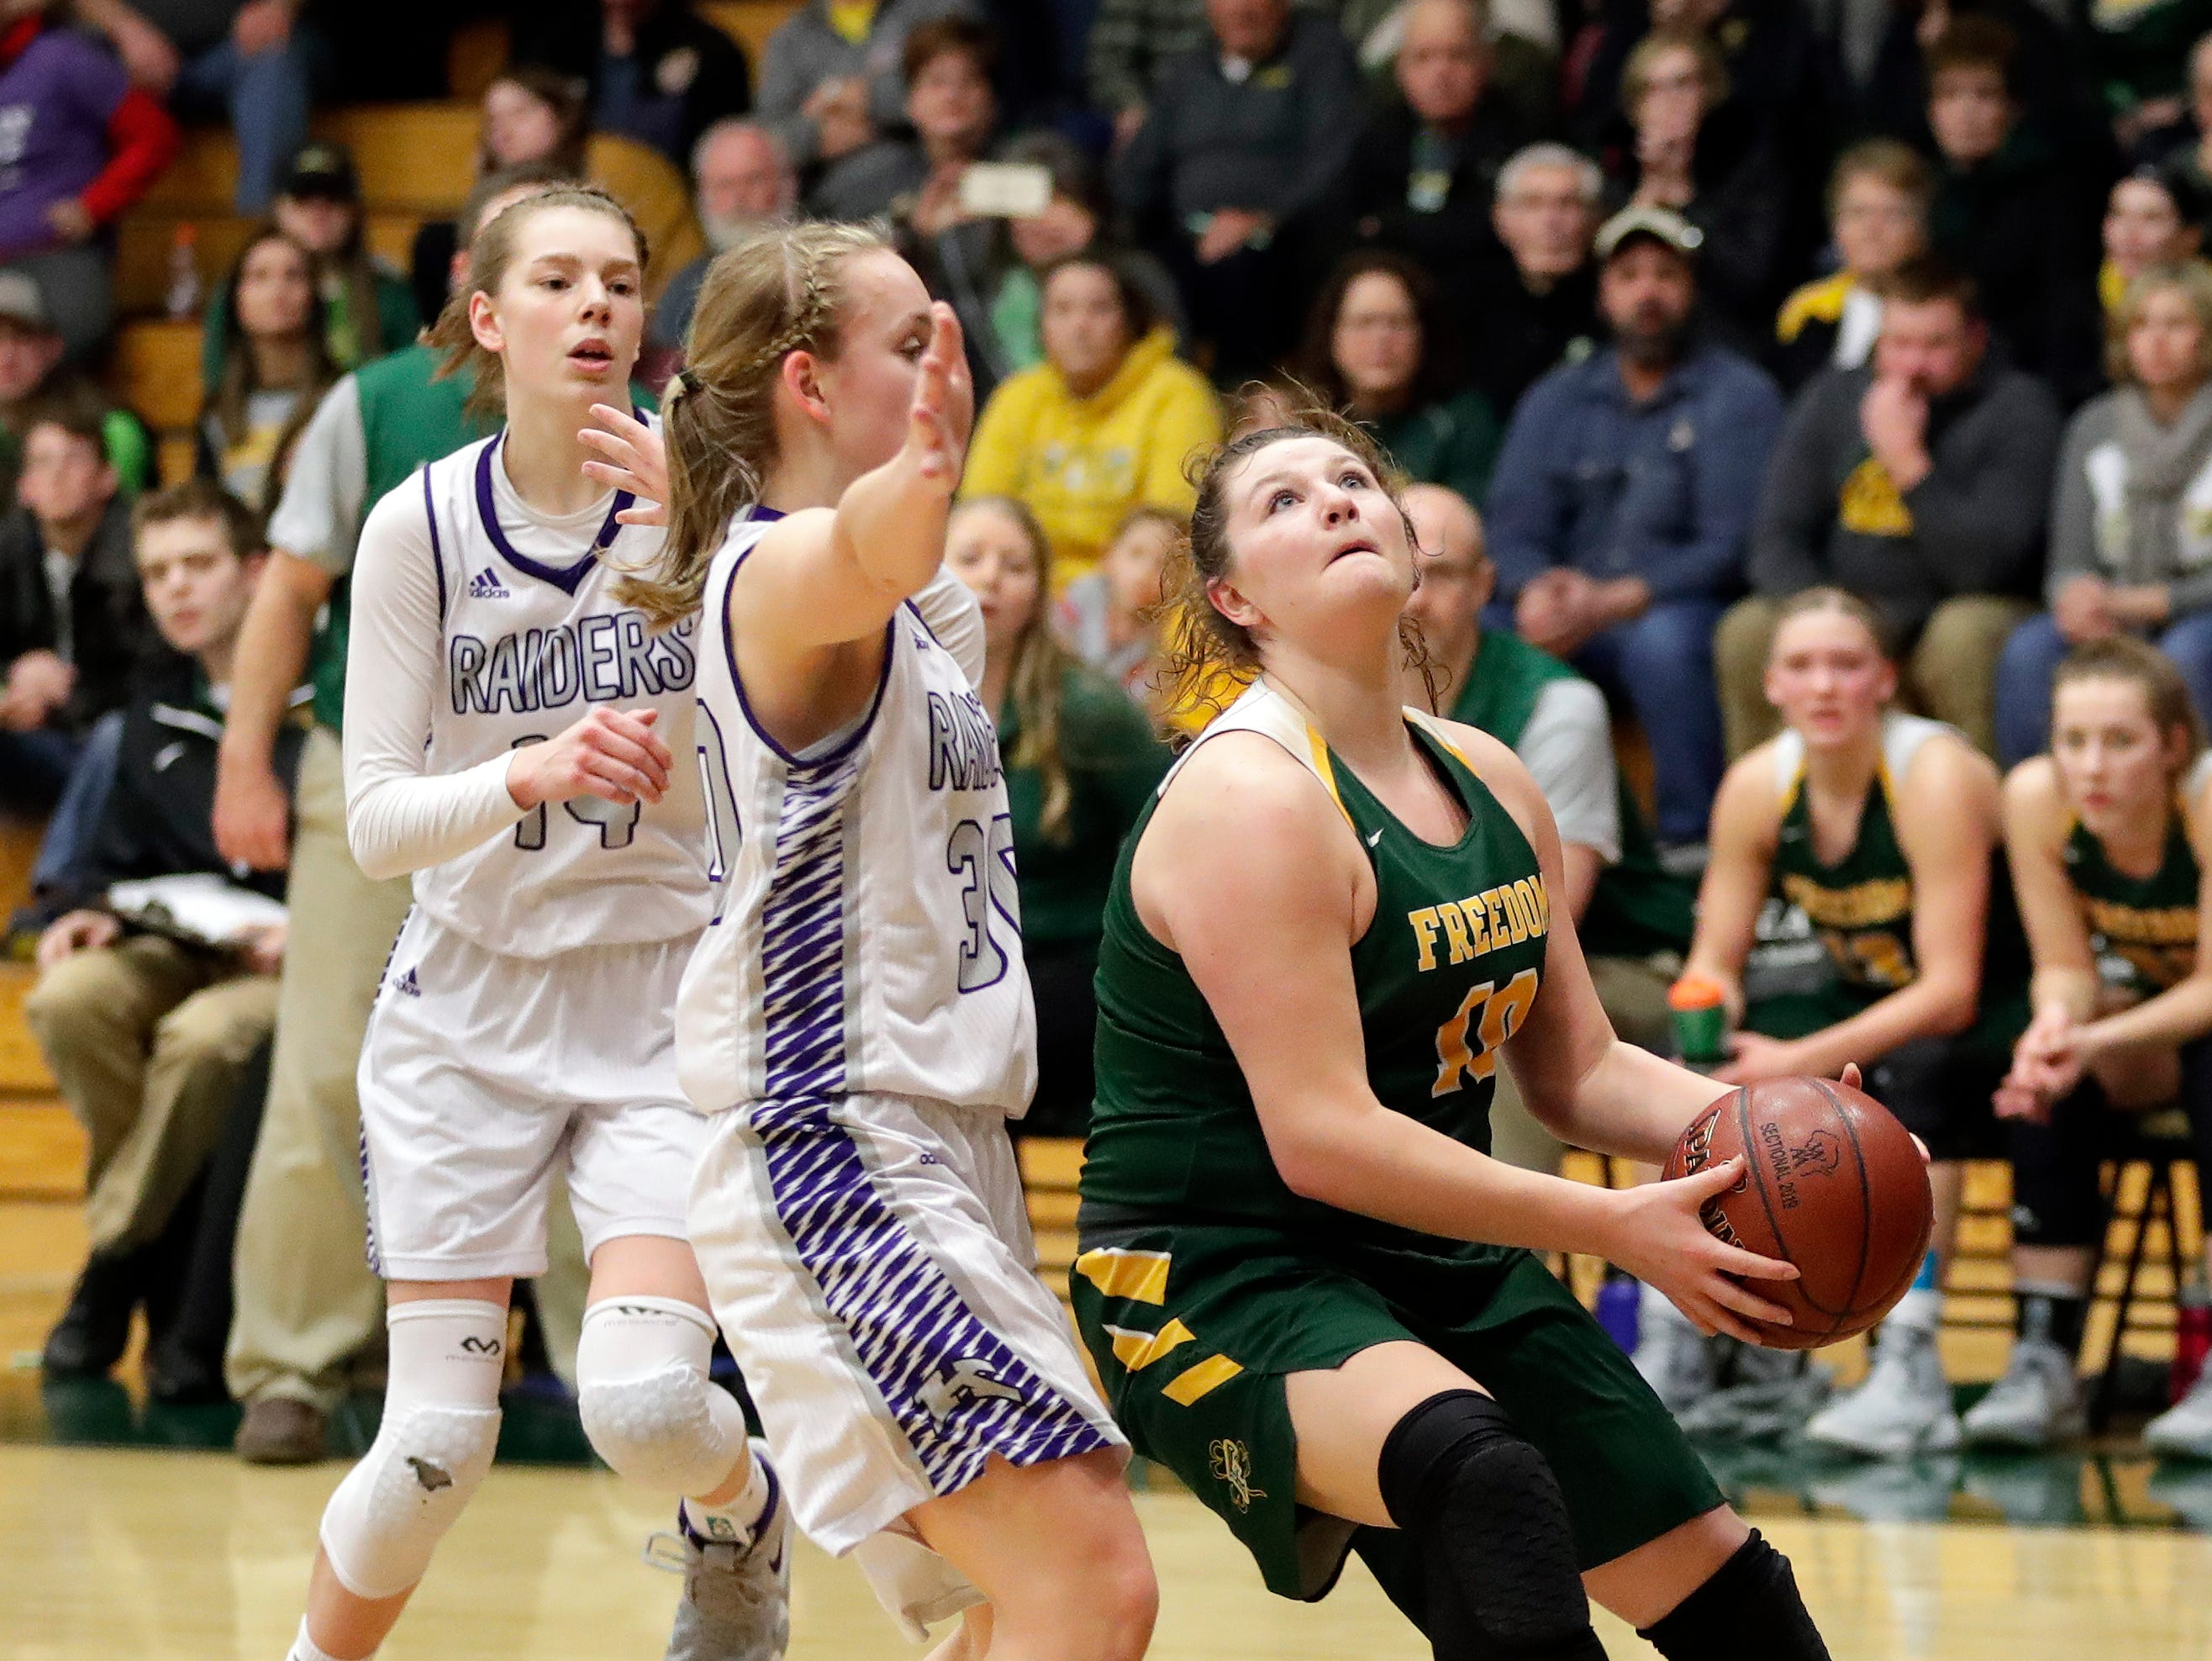 Freedom's Cameron Evers goes in for a basket during a WIAA Division 3 girls basketball sectional championship against Kiel held March 2, 2019 at Ashwaubenon High School. Freedom defeated Kiel 53-40.